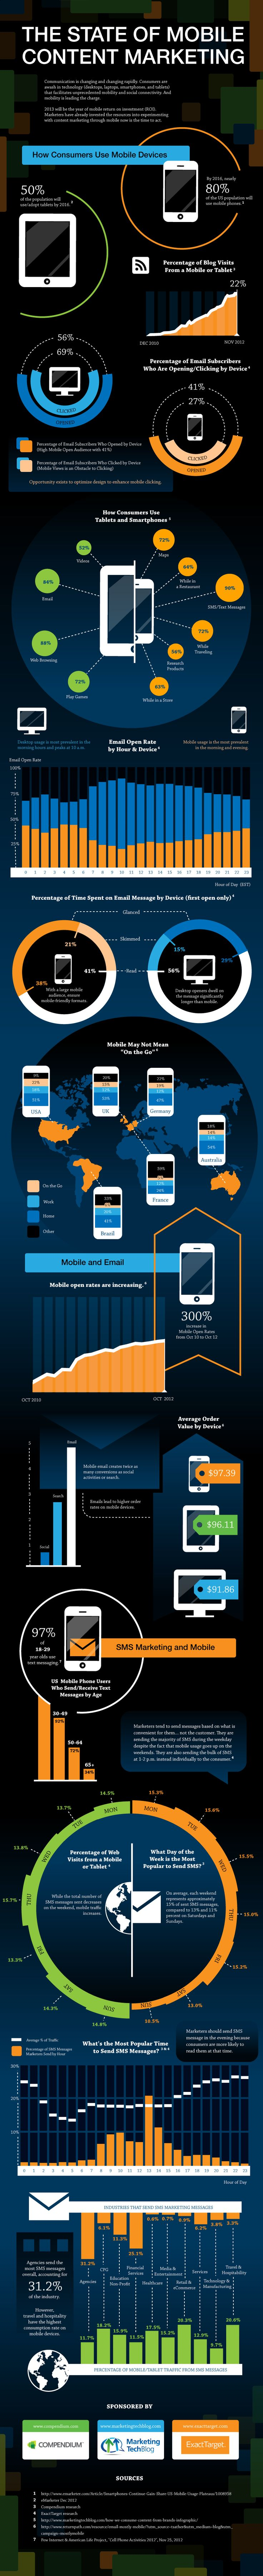 Mobile Content Marketing Infographic  www.business-on-line.fr